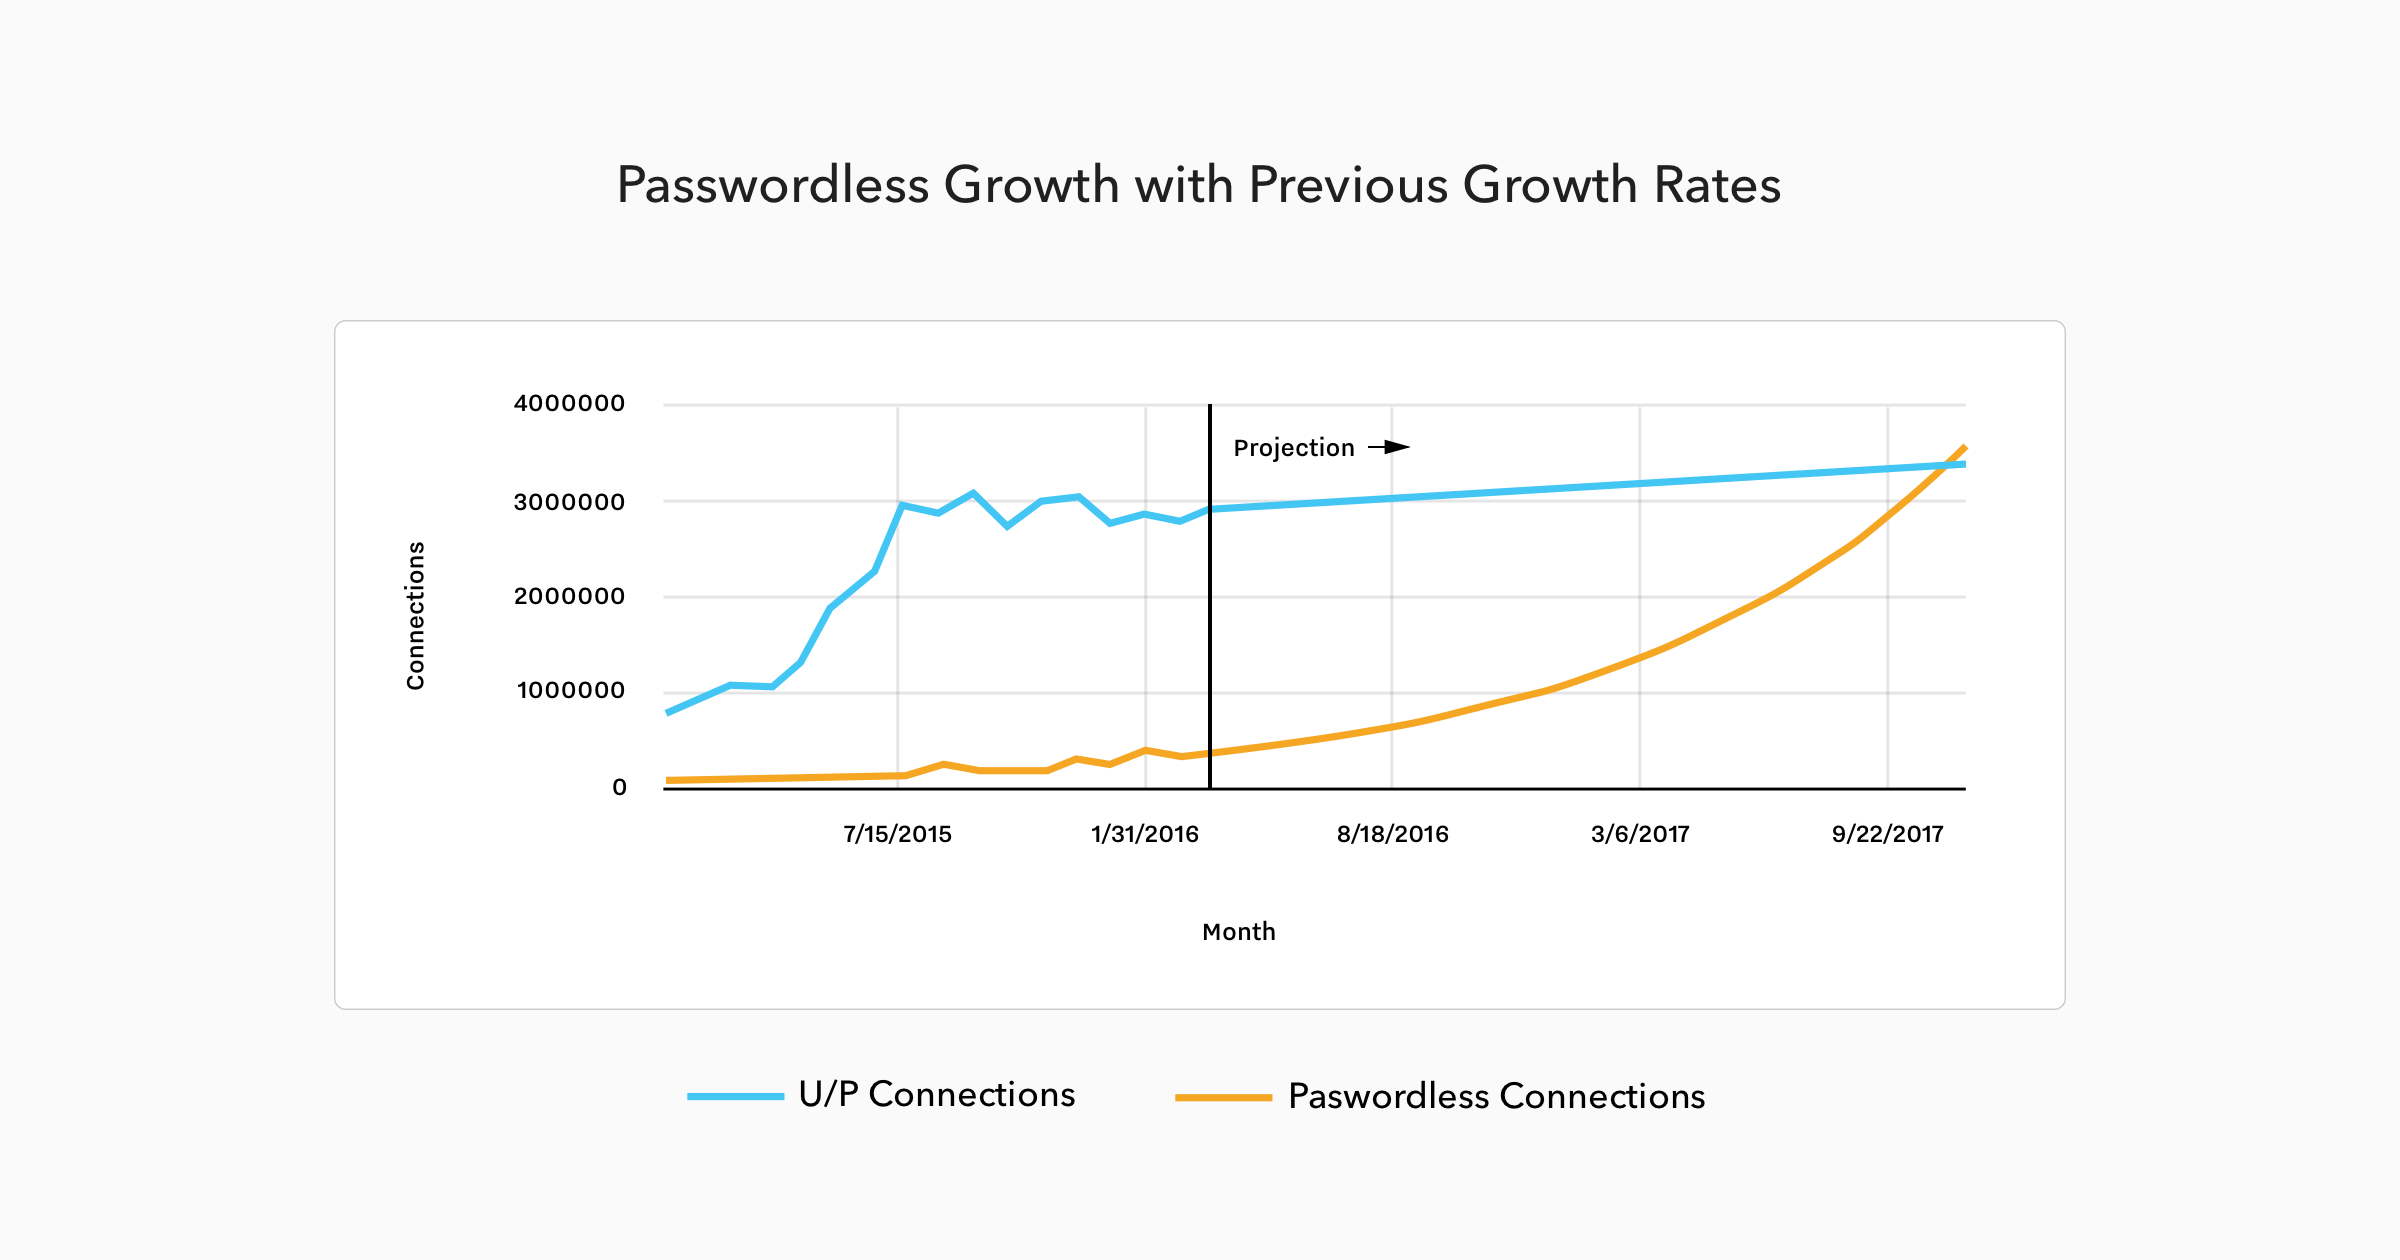 Passwordless Connections Growth with Previous Growth Rates